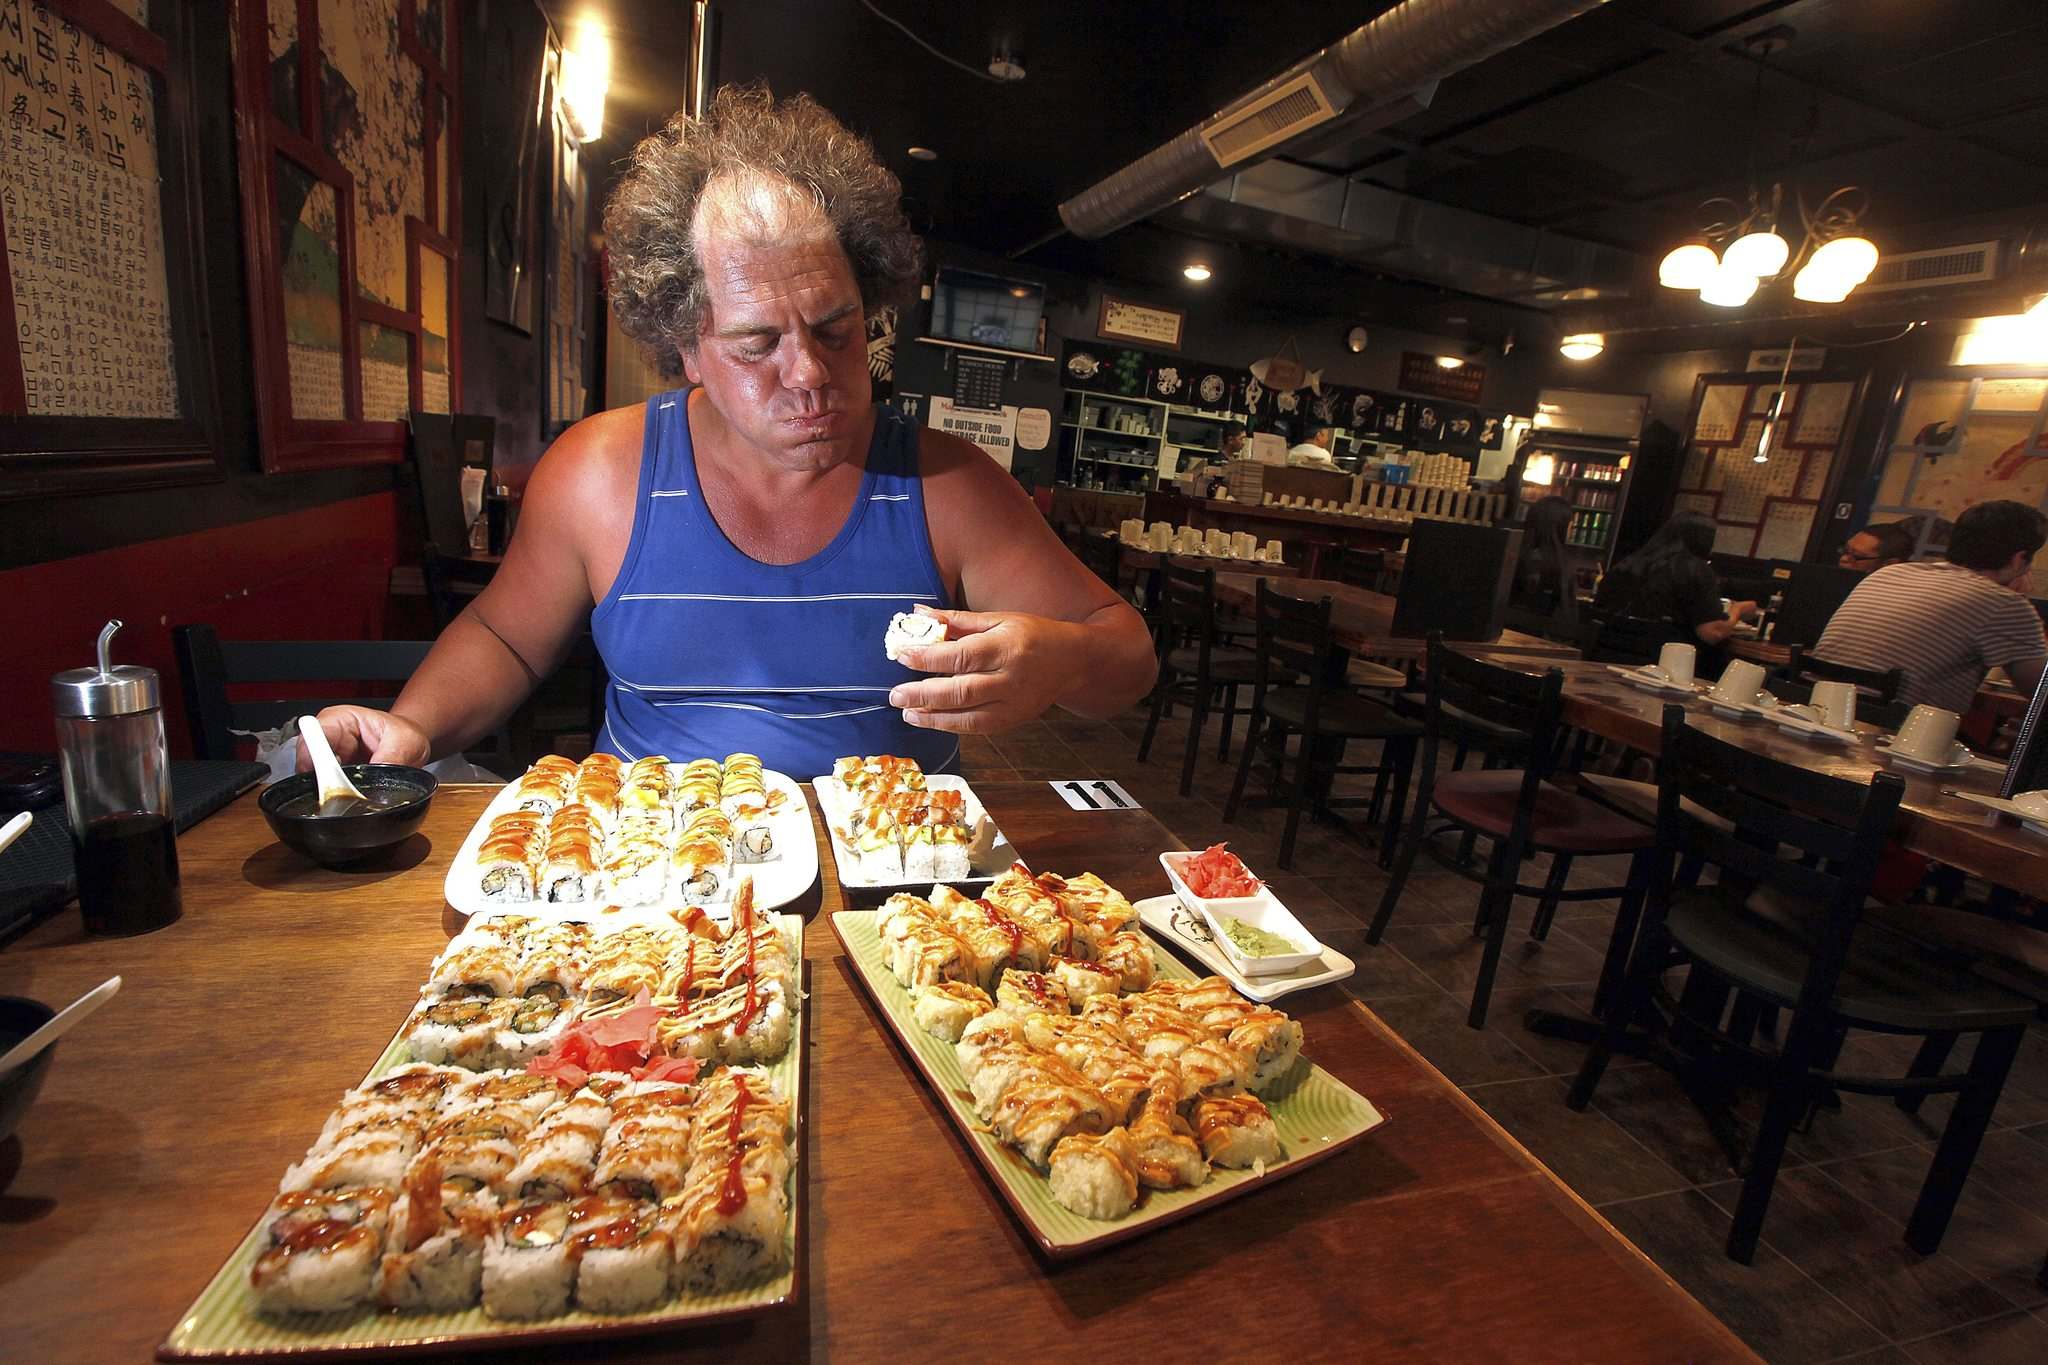 PHIL HOSSACK / WINNIPEG FREE PRESS</p><p>Professional eater John Jugovich finished off 46 perogies Friday night to win the eating contest at the Spirit of Ukraine Pavilion at Folklorama. On Saturday he was craving sushi.</p></p>